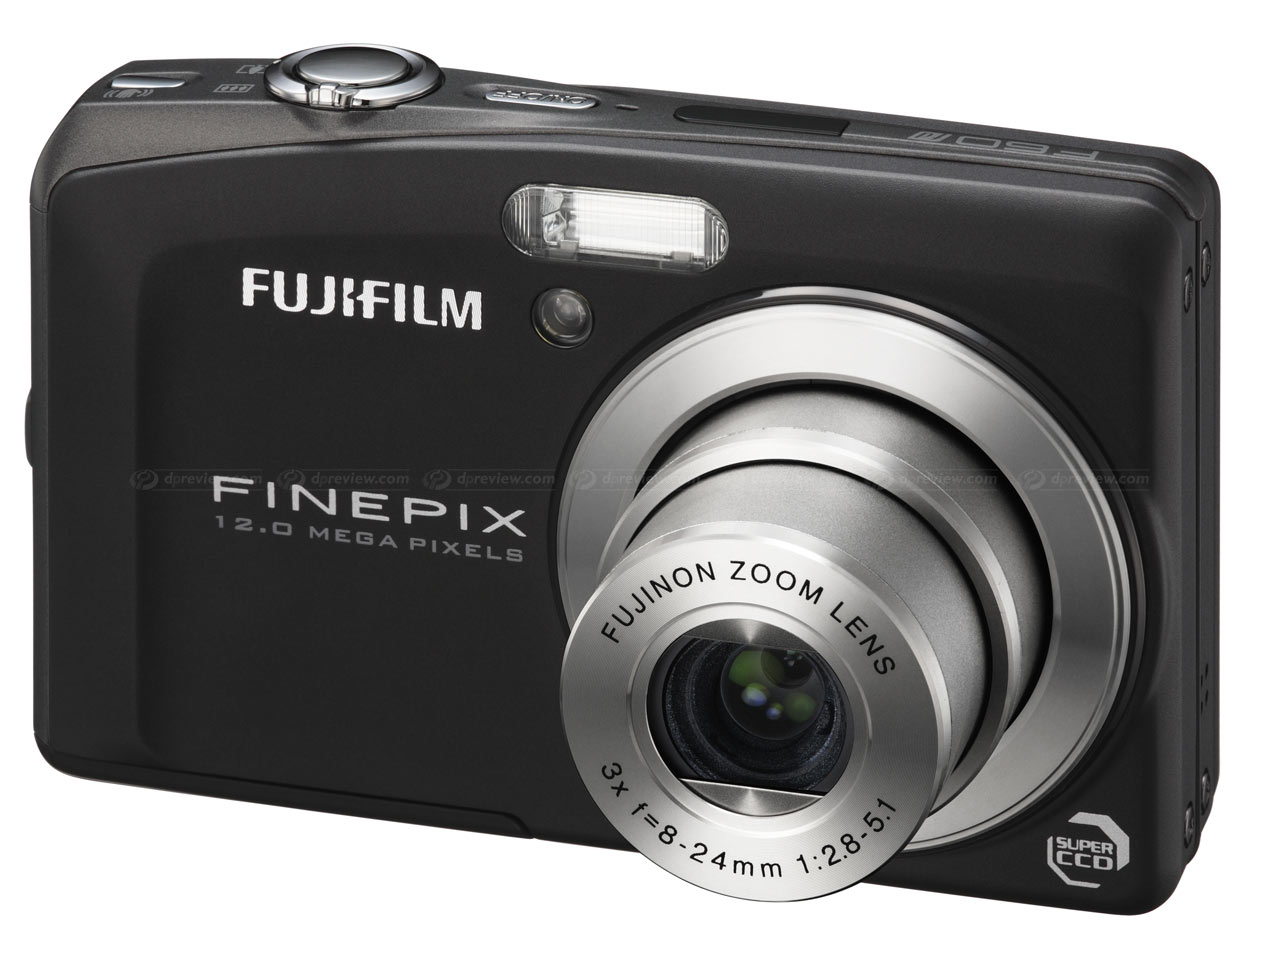 fujifilm finepix f60fd digital photography review rh dpreview com Fujifilm FinePix S9000 Fujifilm FinePix A-Series